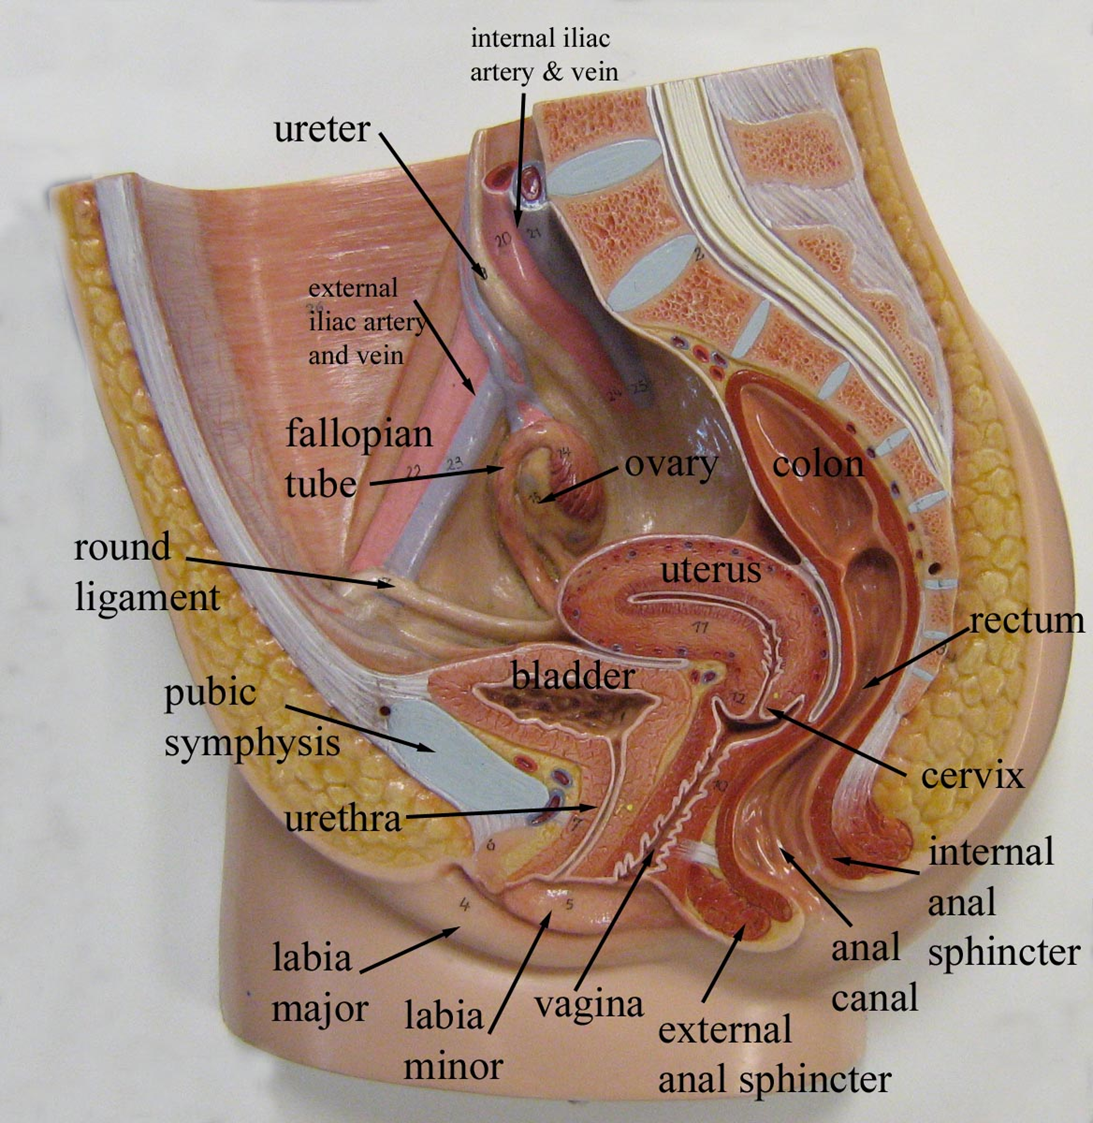 labeled pelvic spaces uterine - Google Search | healthcare ...